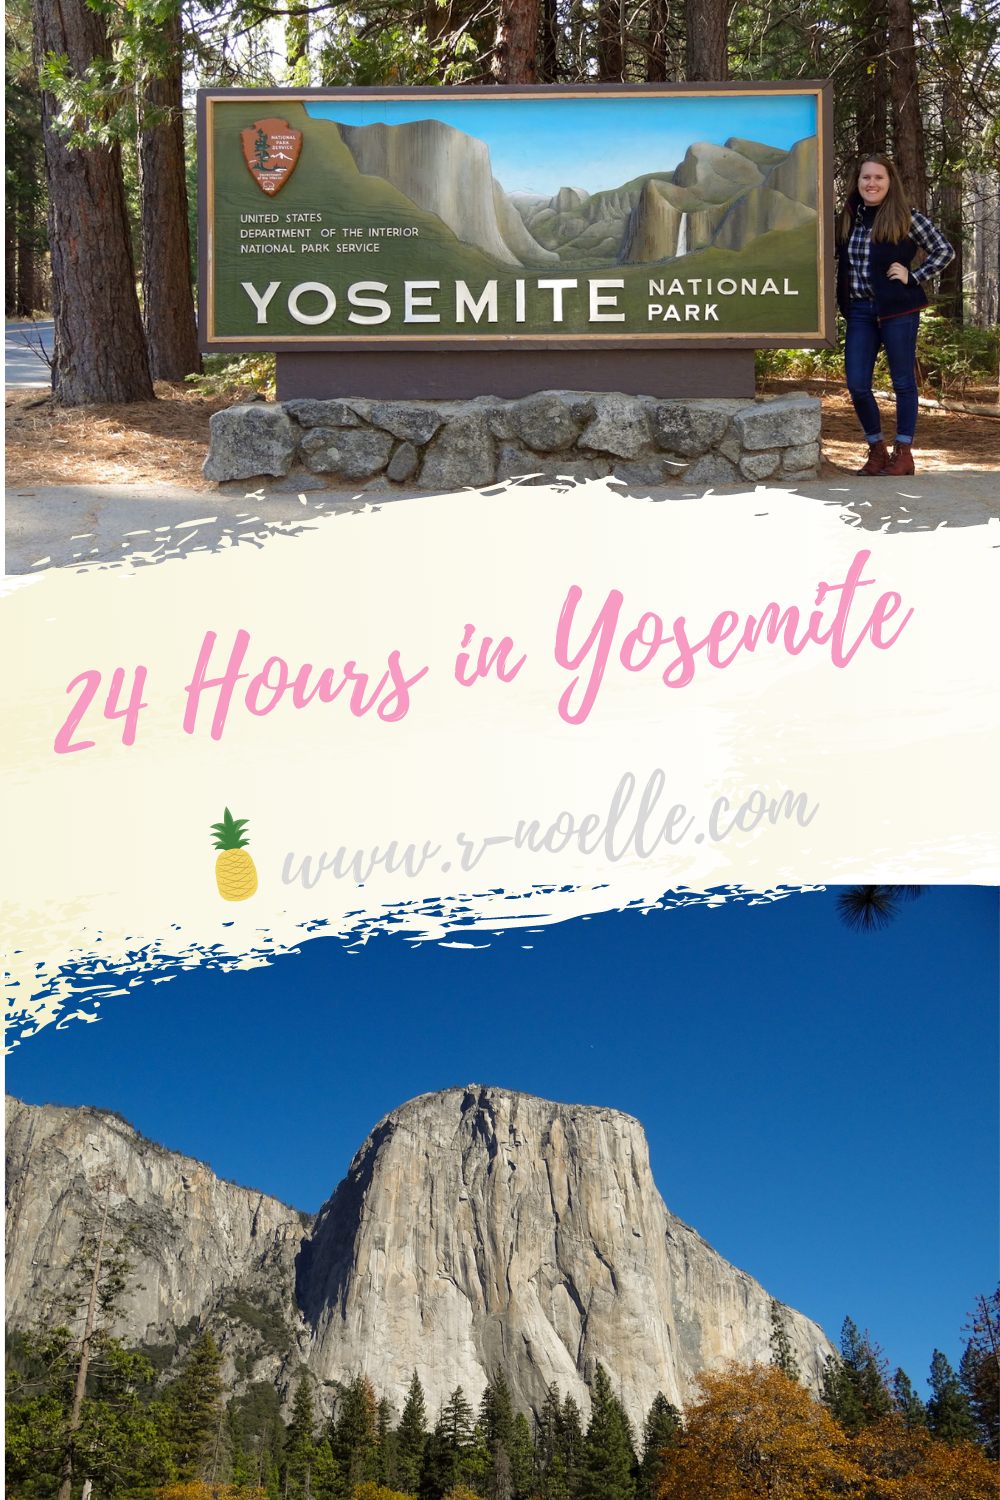 Spend the day in Yosemite National Park. Whether you're on a road trip or not the camping type, here are the highlighted views you must see. Save these spots and do this loop to make the most of your day at Yosemite.